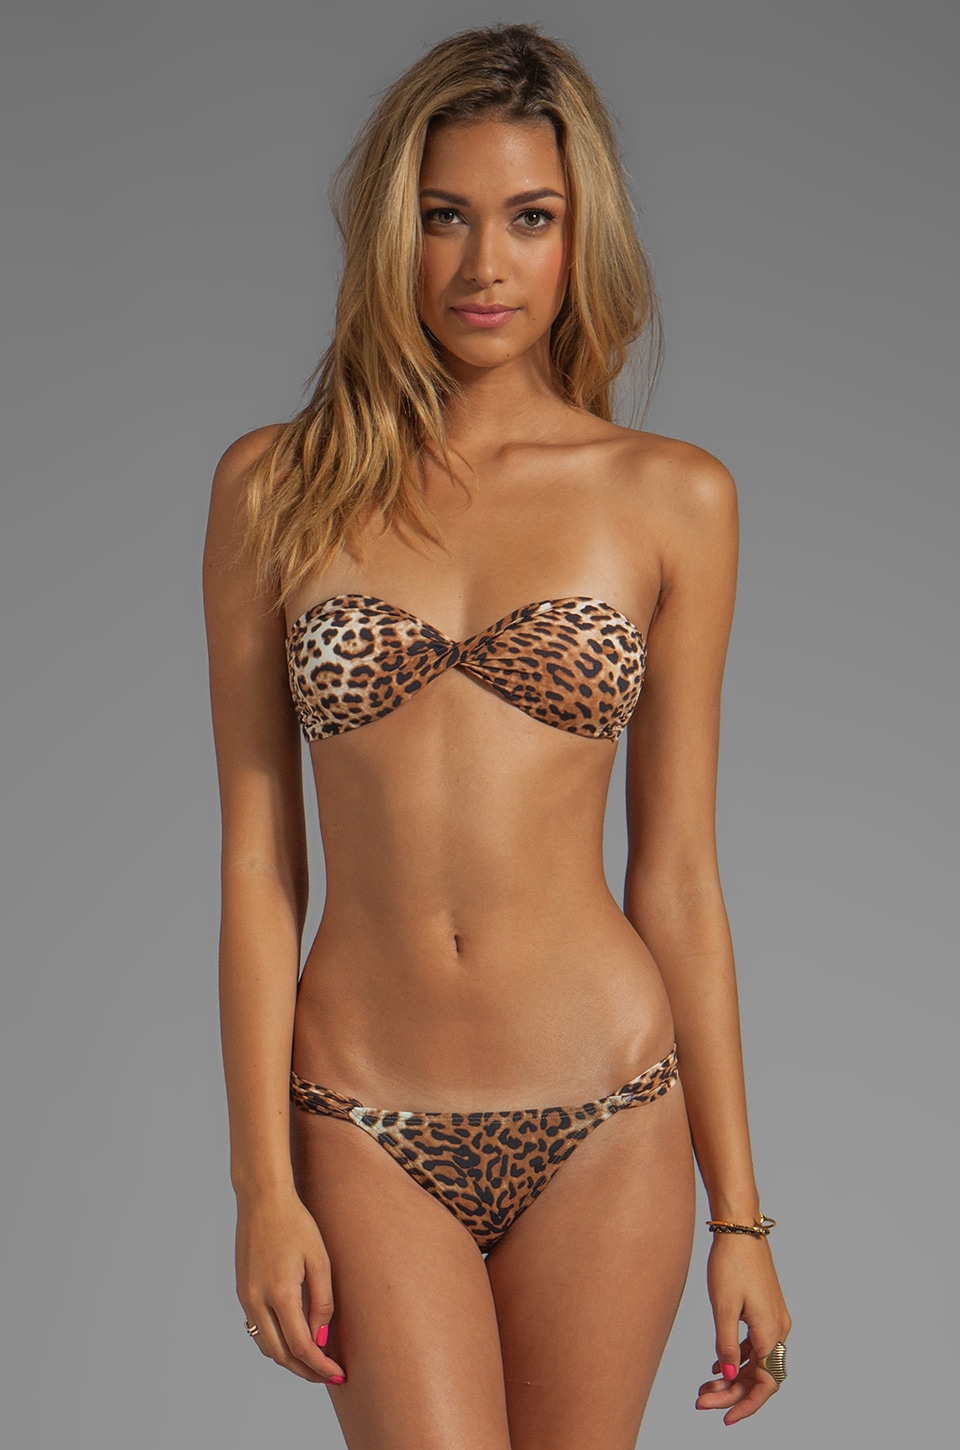 Vix Swimwear Native Twisted Bandeau Top in Leopard